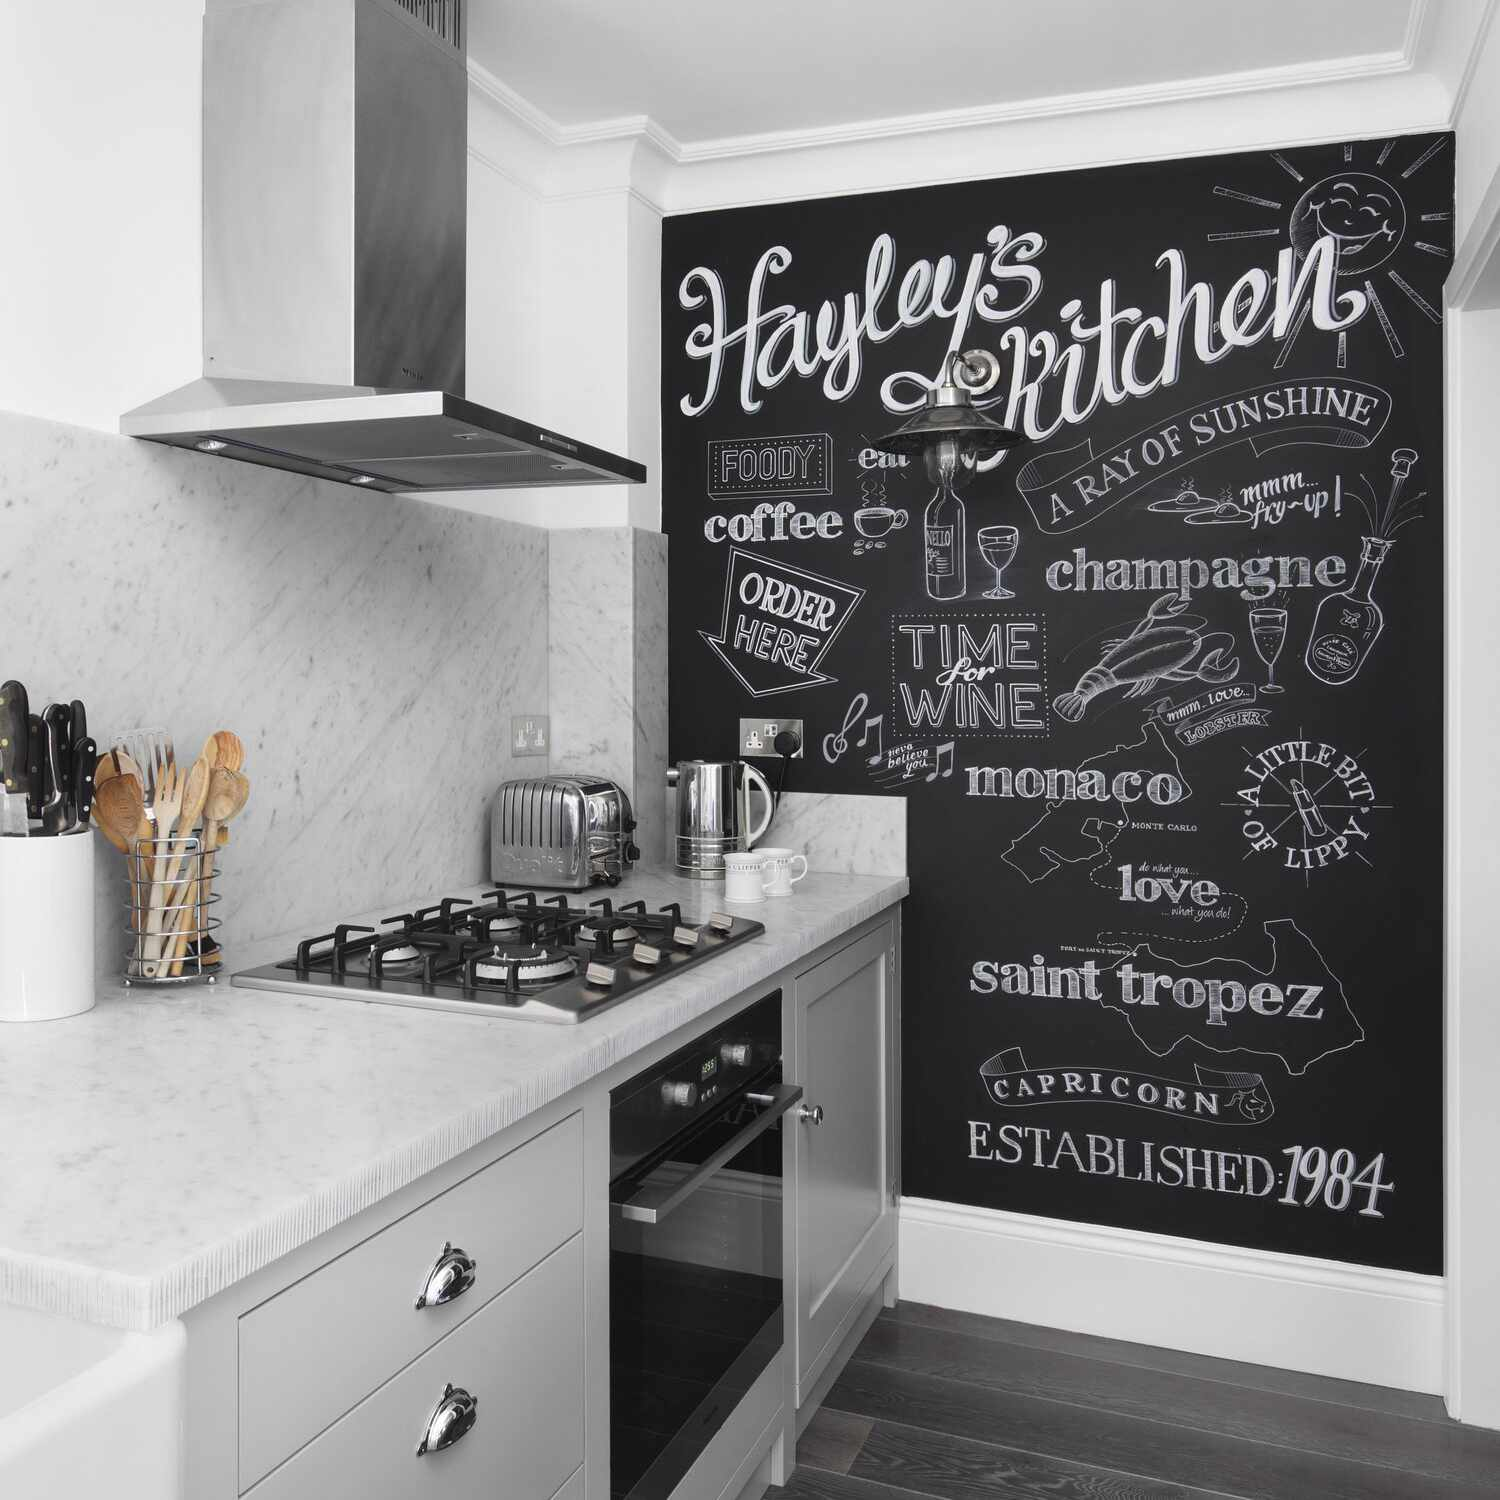 A kitchen with light gray cabinets, marble countertops, and charcoal floors